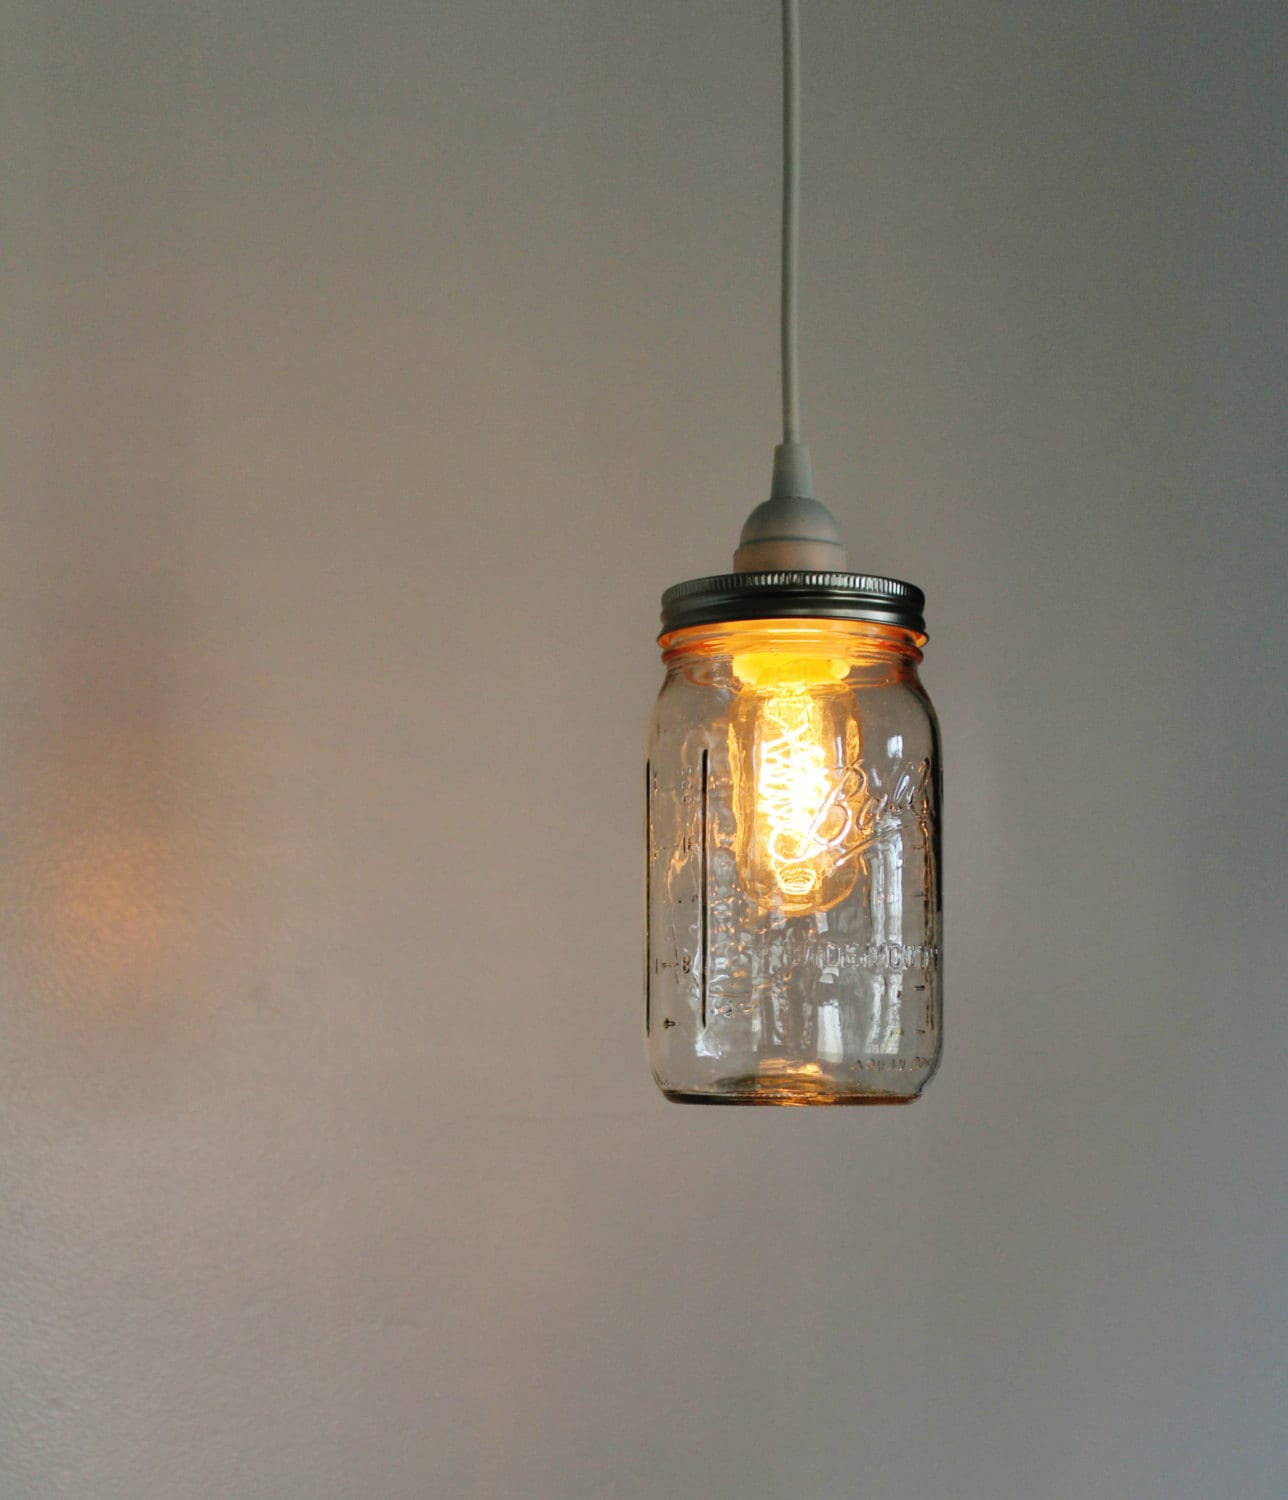 mason jar pendant lamp upcycled hanging lighting fixture. Black Bedroom Furniture Sets. Home Design Ideas